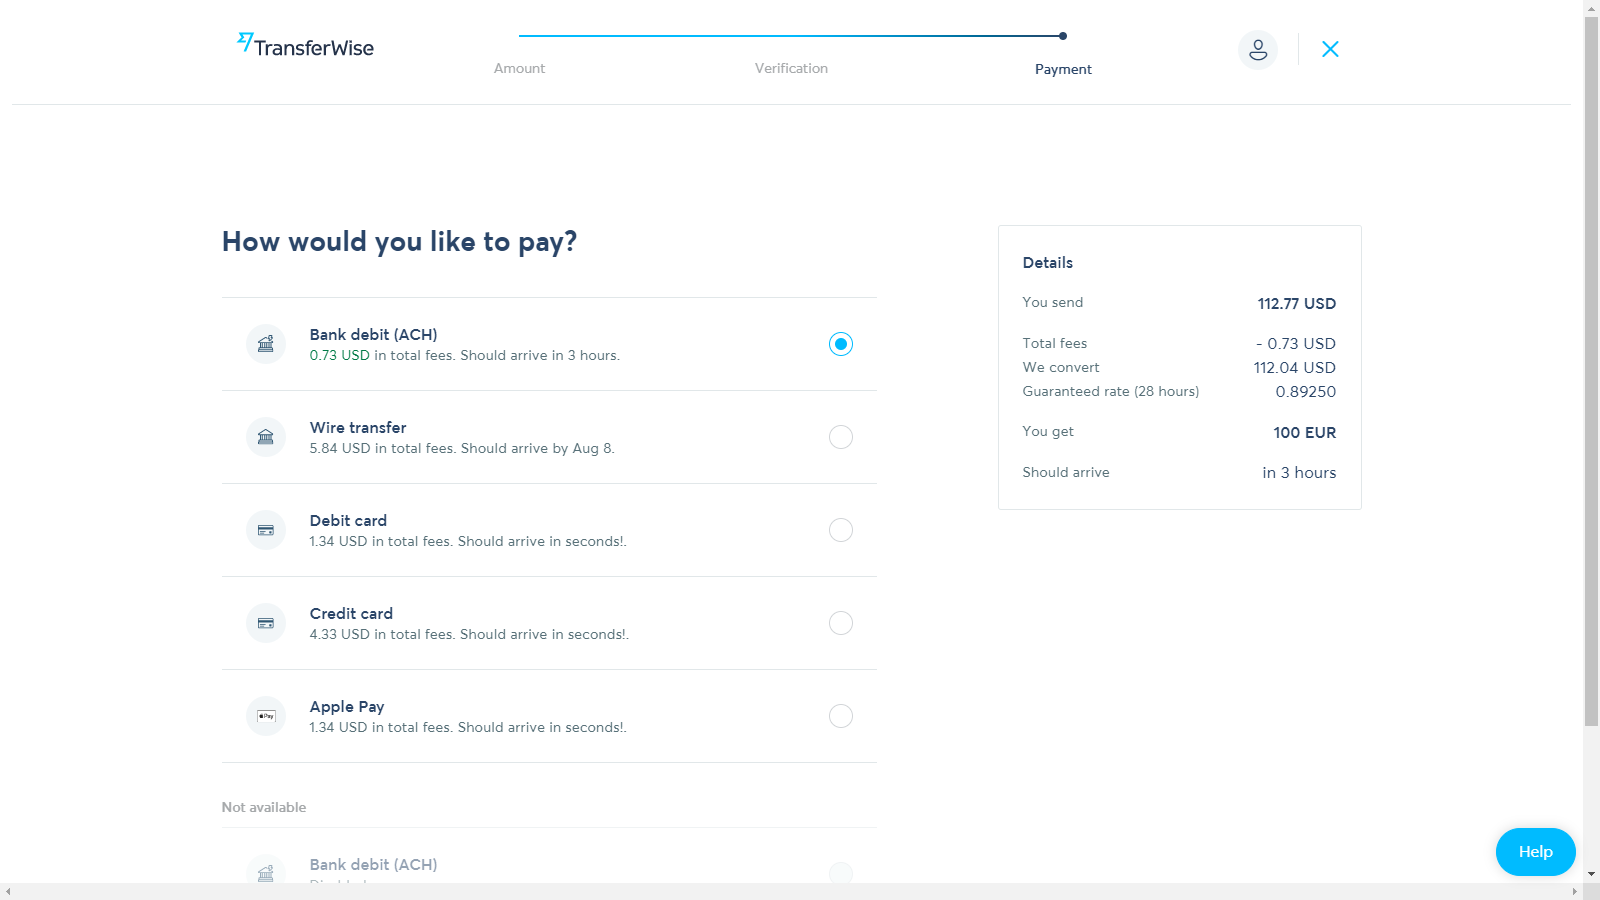 transferwise currency exchange fintech example of clear microcopy and fee breakdown